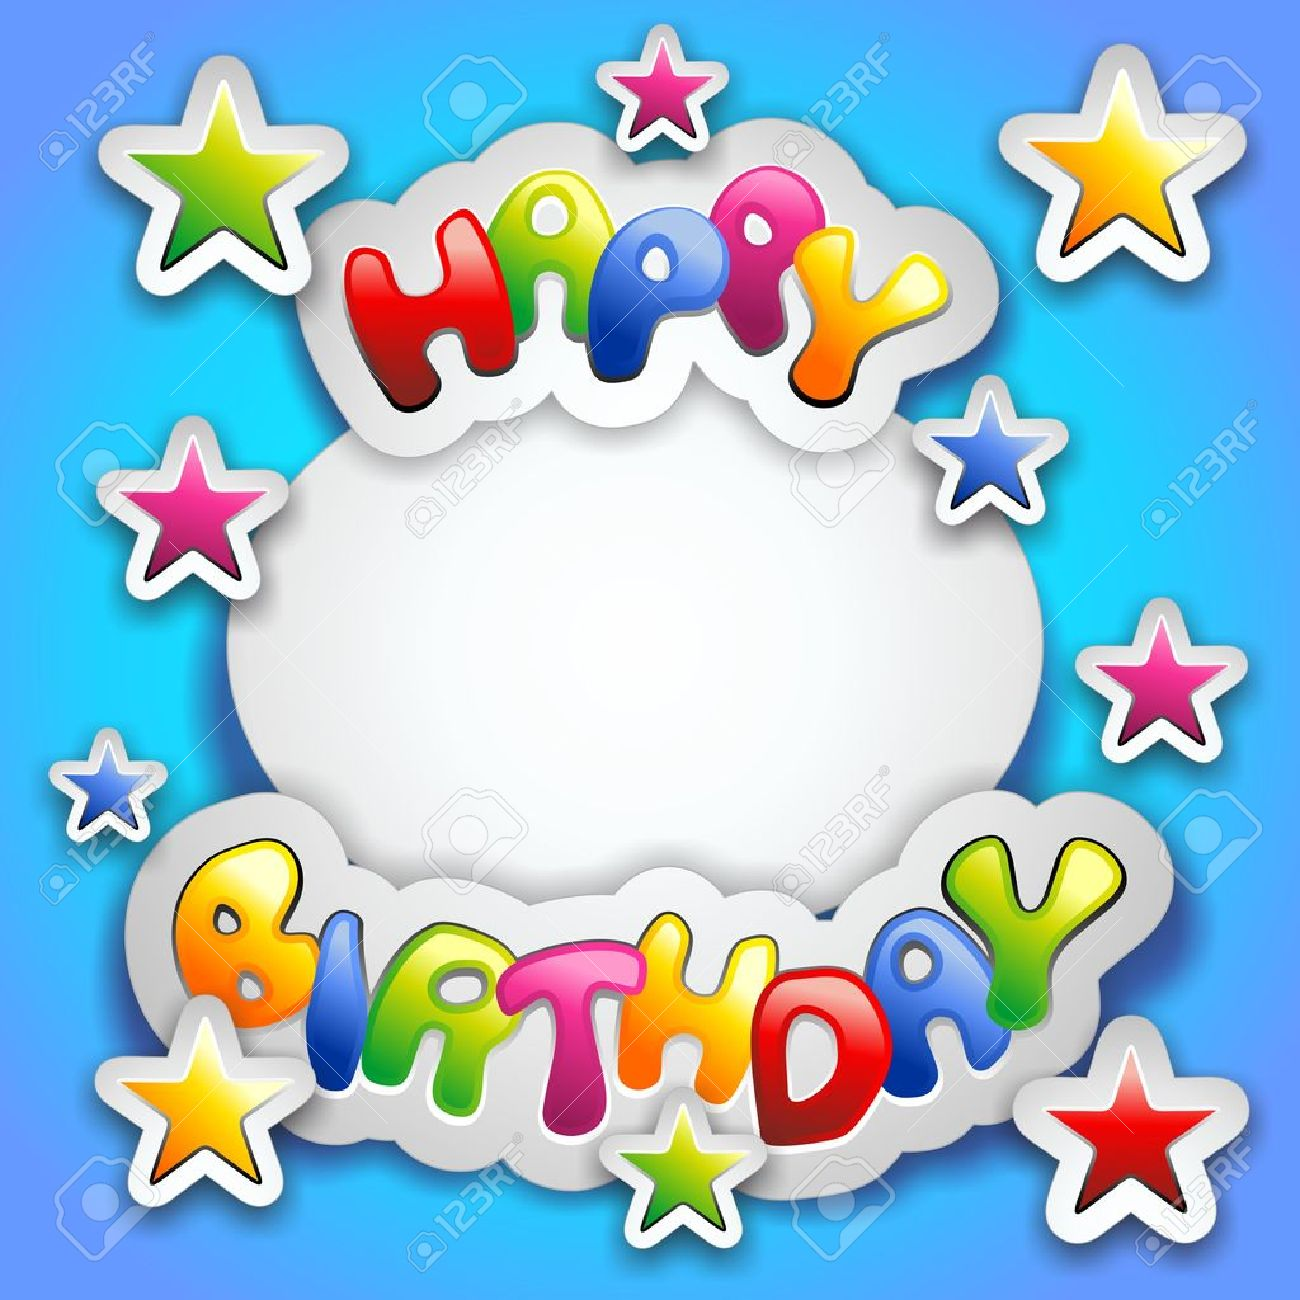 birthday stickers for text messages ; 19684775-happy-birthday-party-colorful-stickers-card